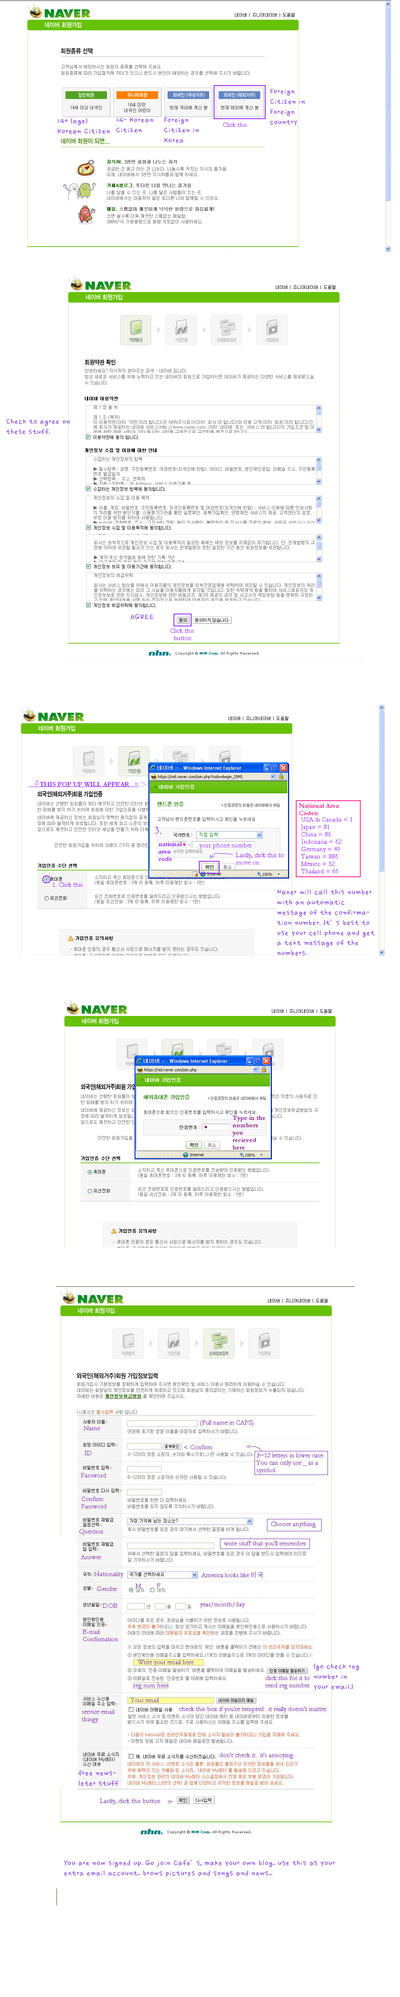 Register Quide for Naver.com by Koreanclub